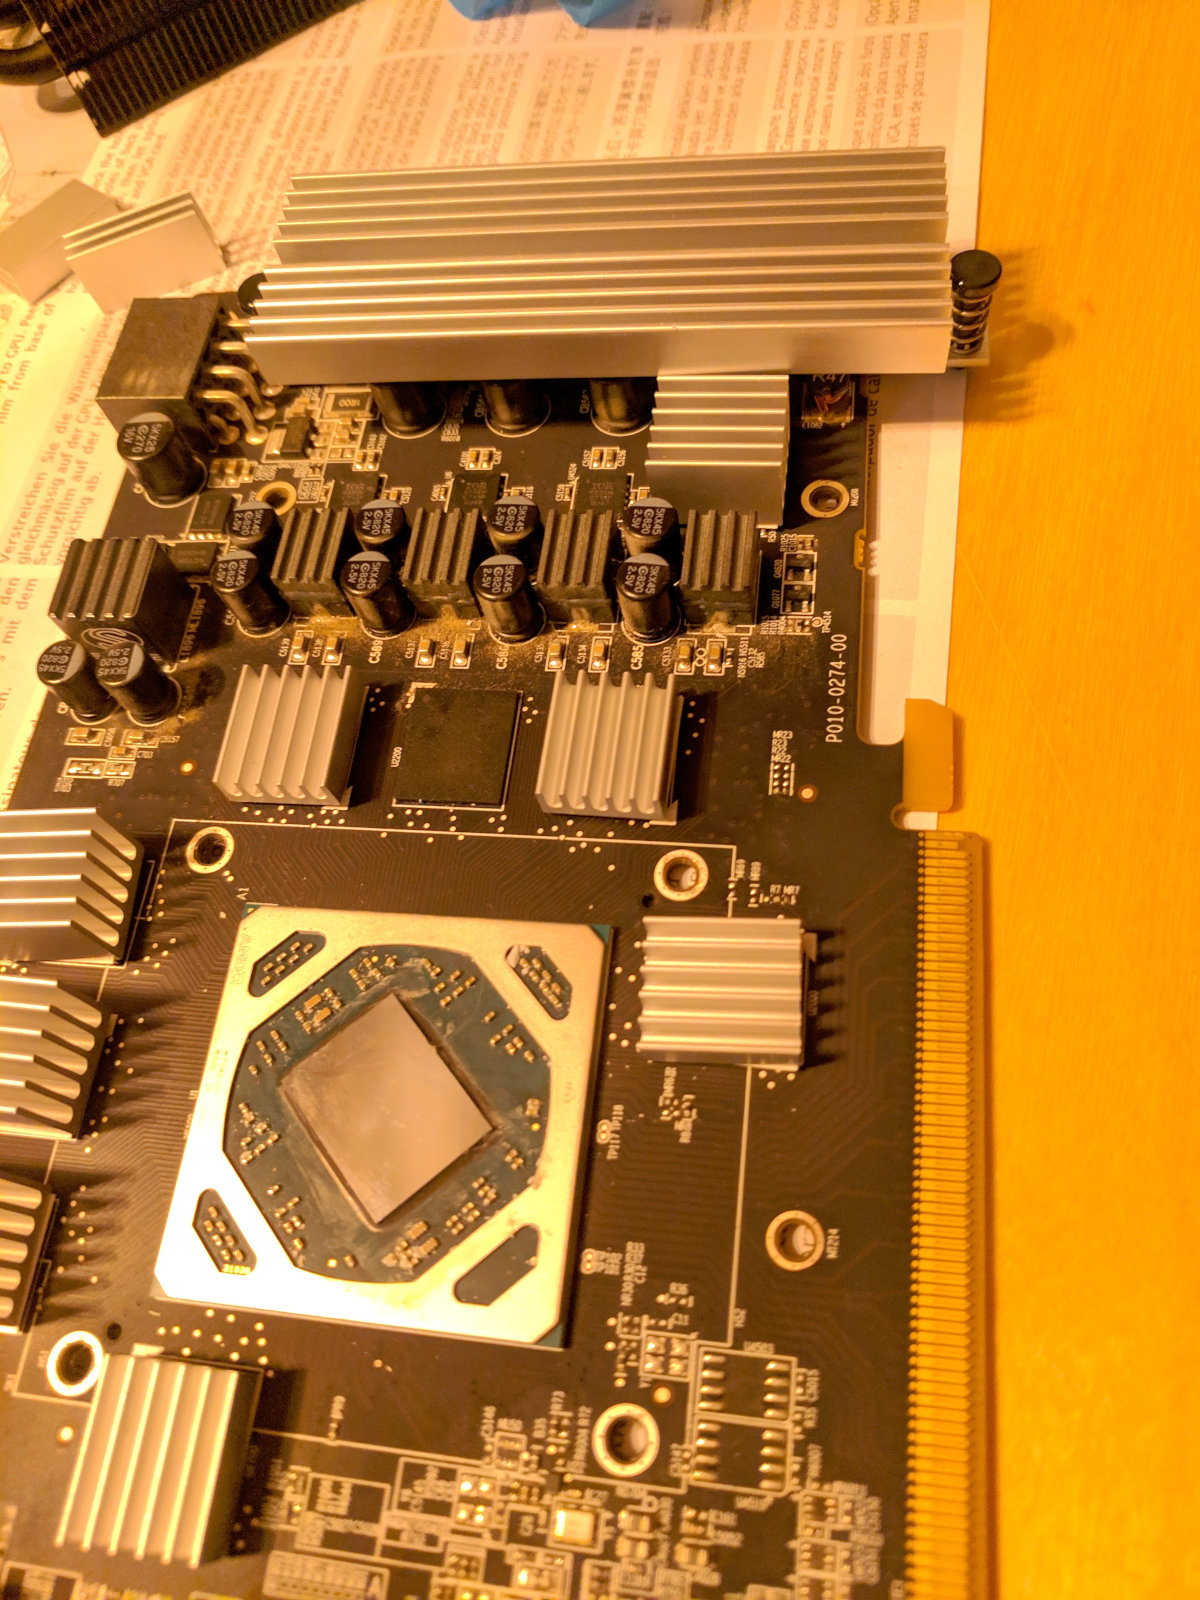 /blog/upload/09_overlong_vrm_heatsink.jpg